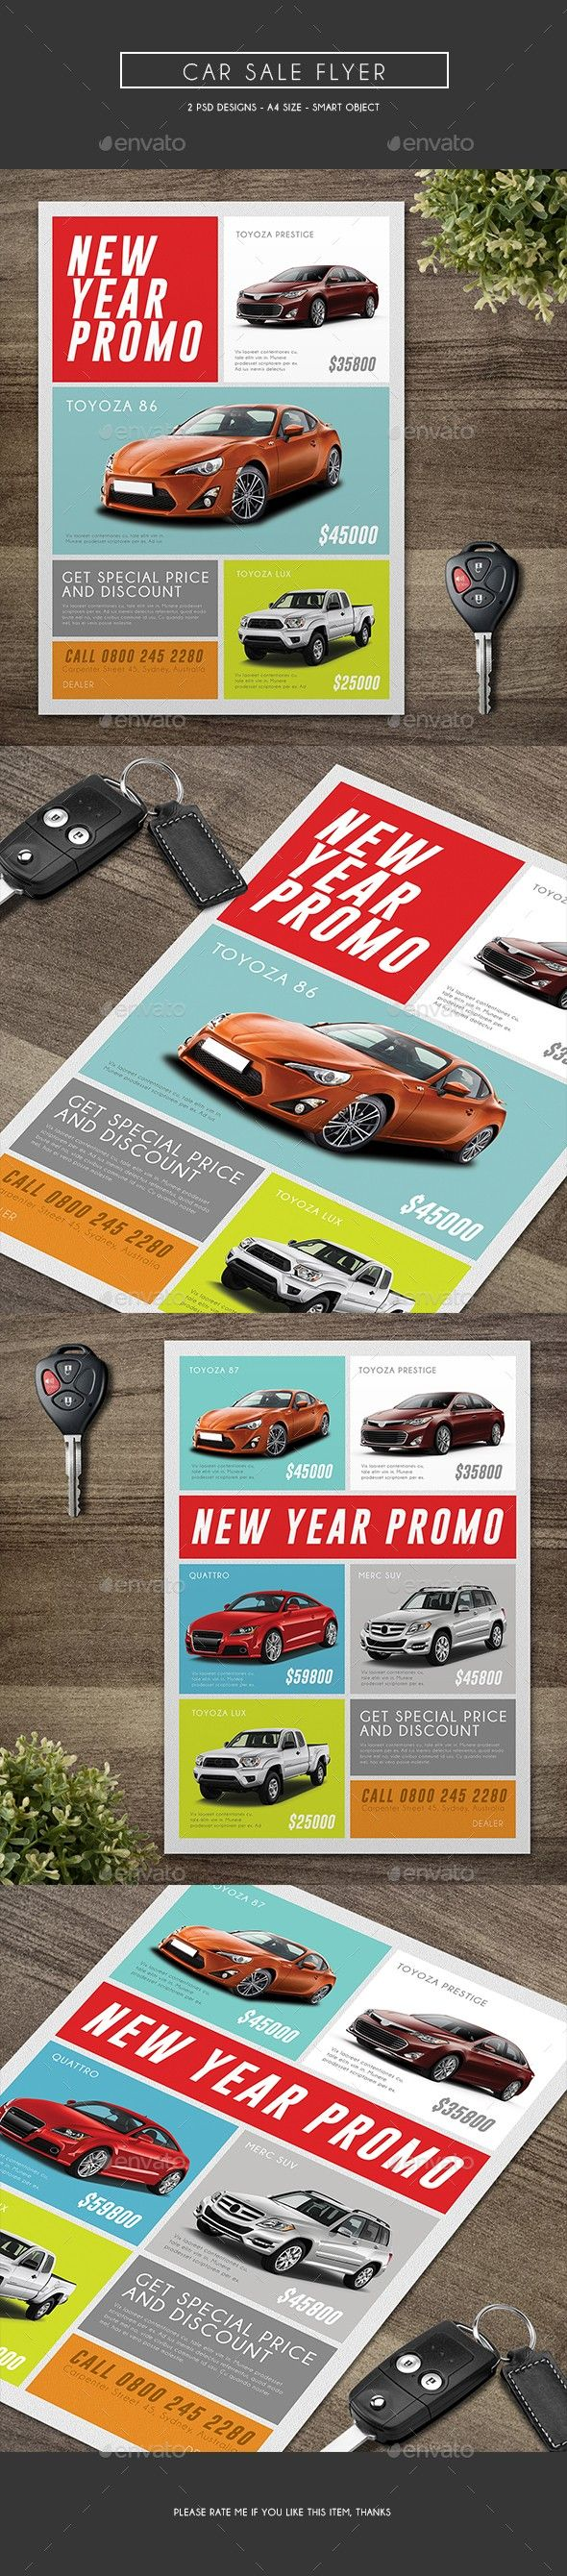 Car For Sale Flyer Car Sale Flyer  Pinterest  Sale Flyer Fonts Download And Fonts